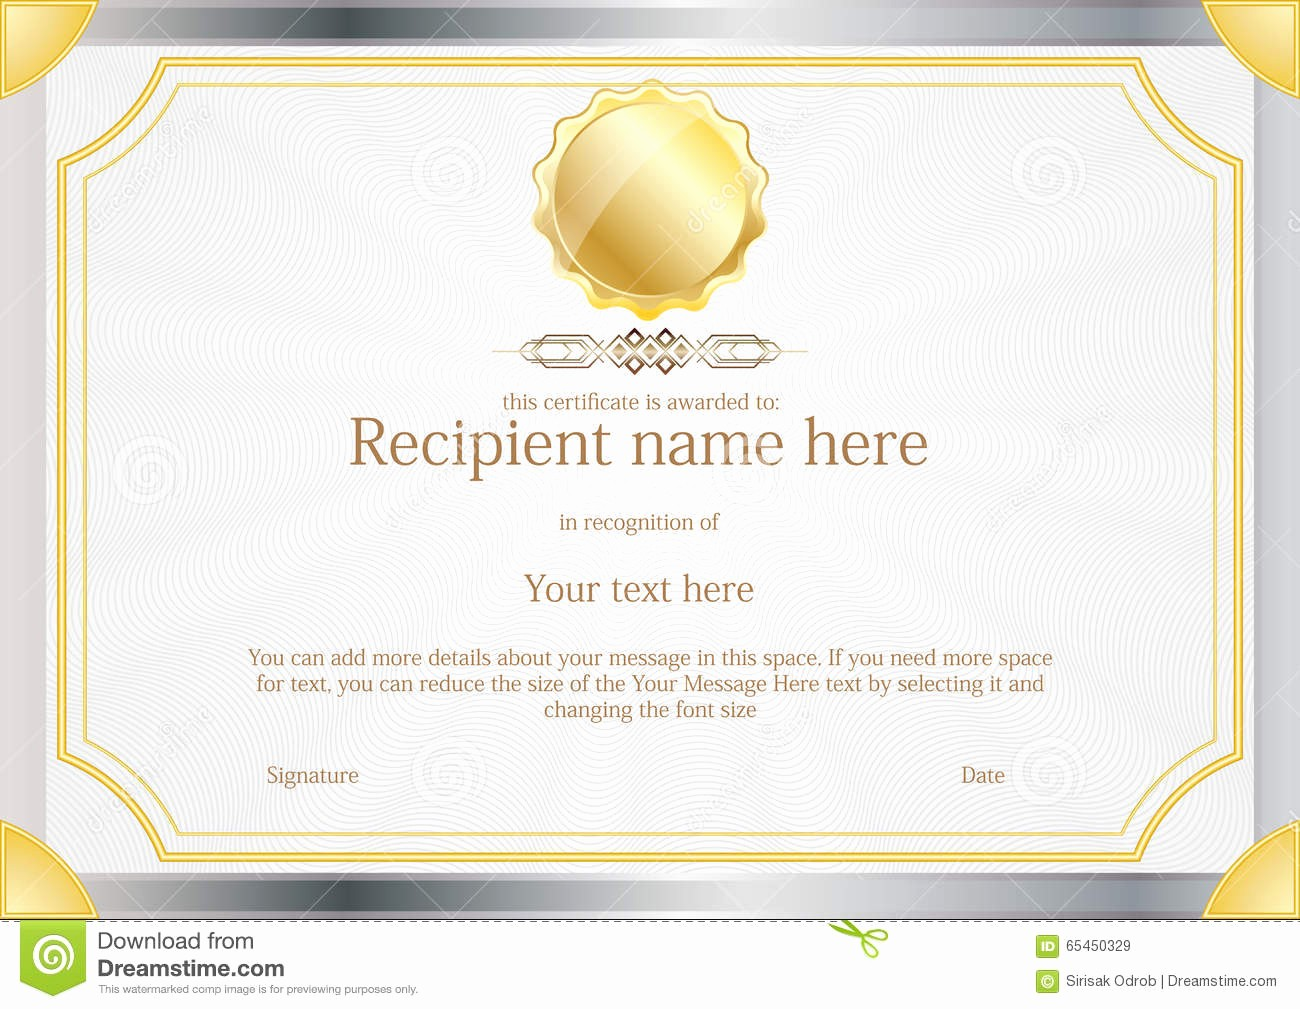 How to Design A Certificate New Award Certificate Frame Template Design Vector Stock